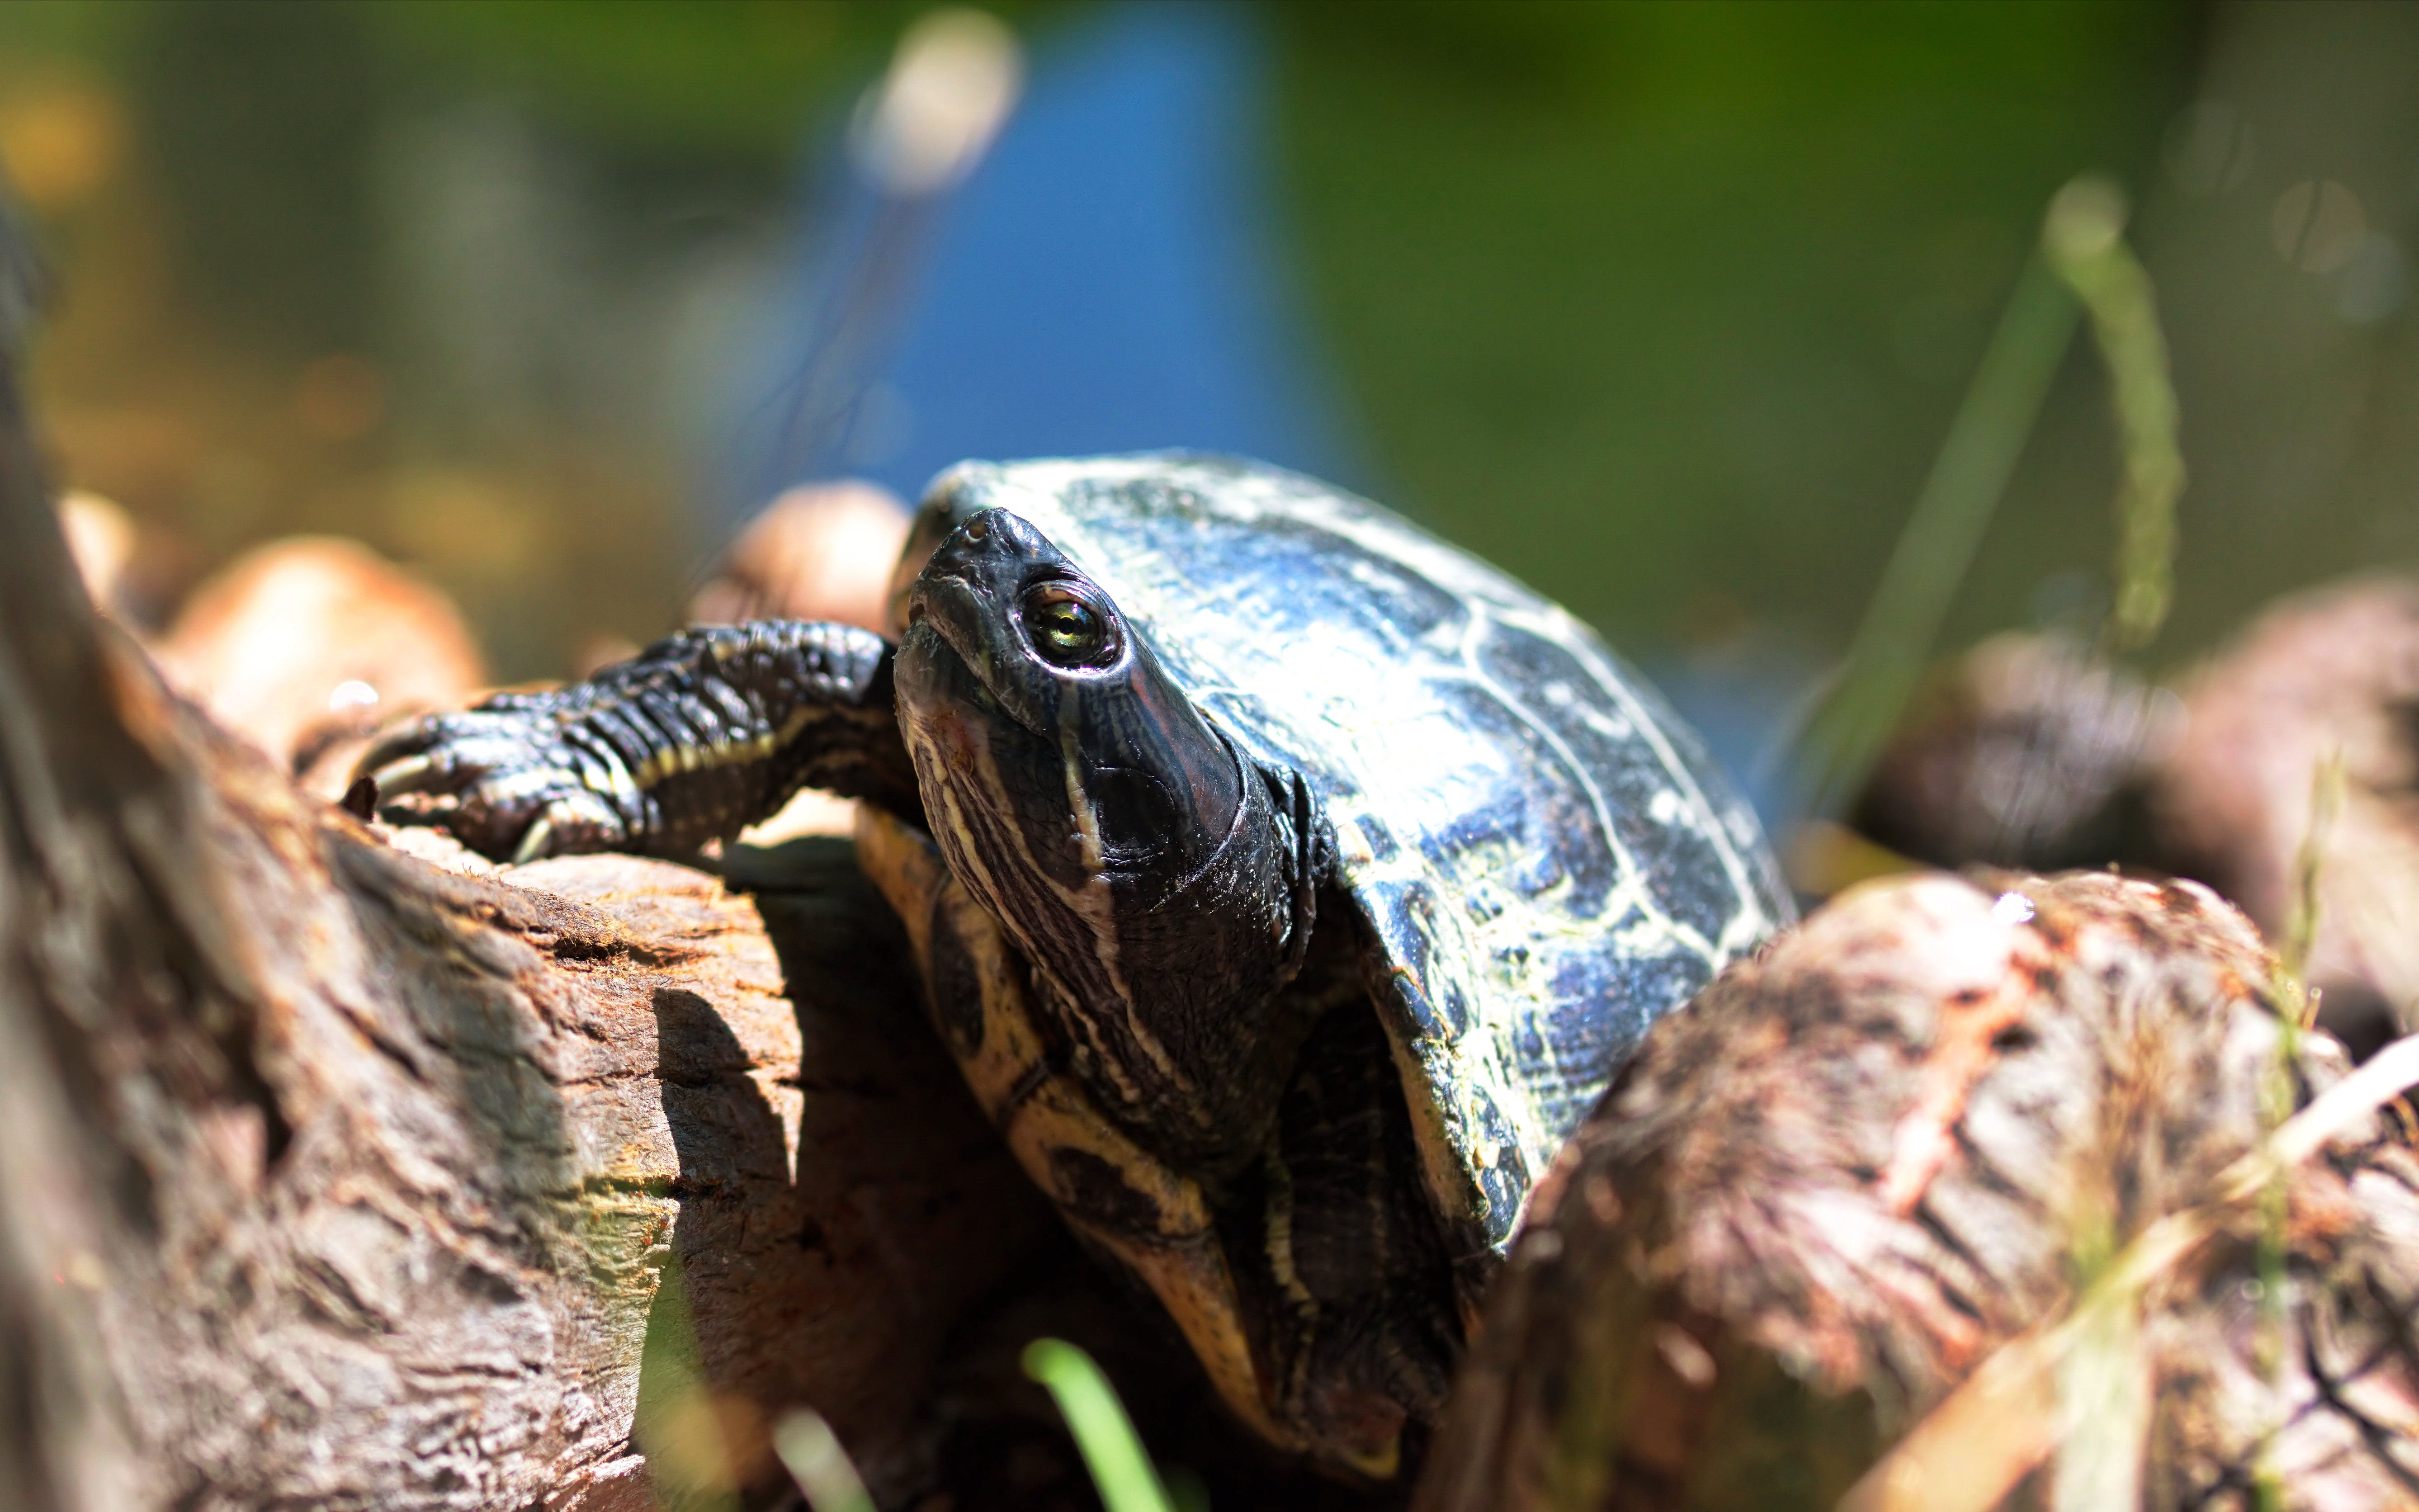 Free stock photo of close-up view of a turtle, tree